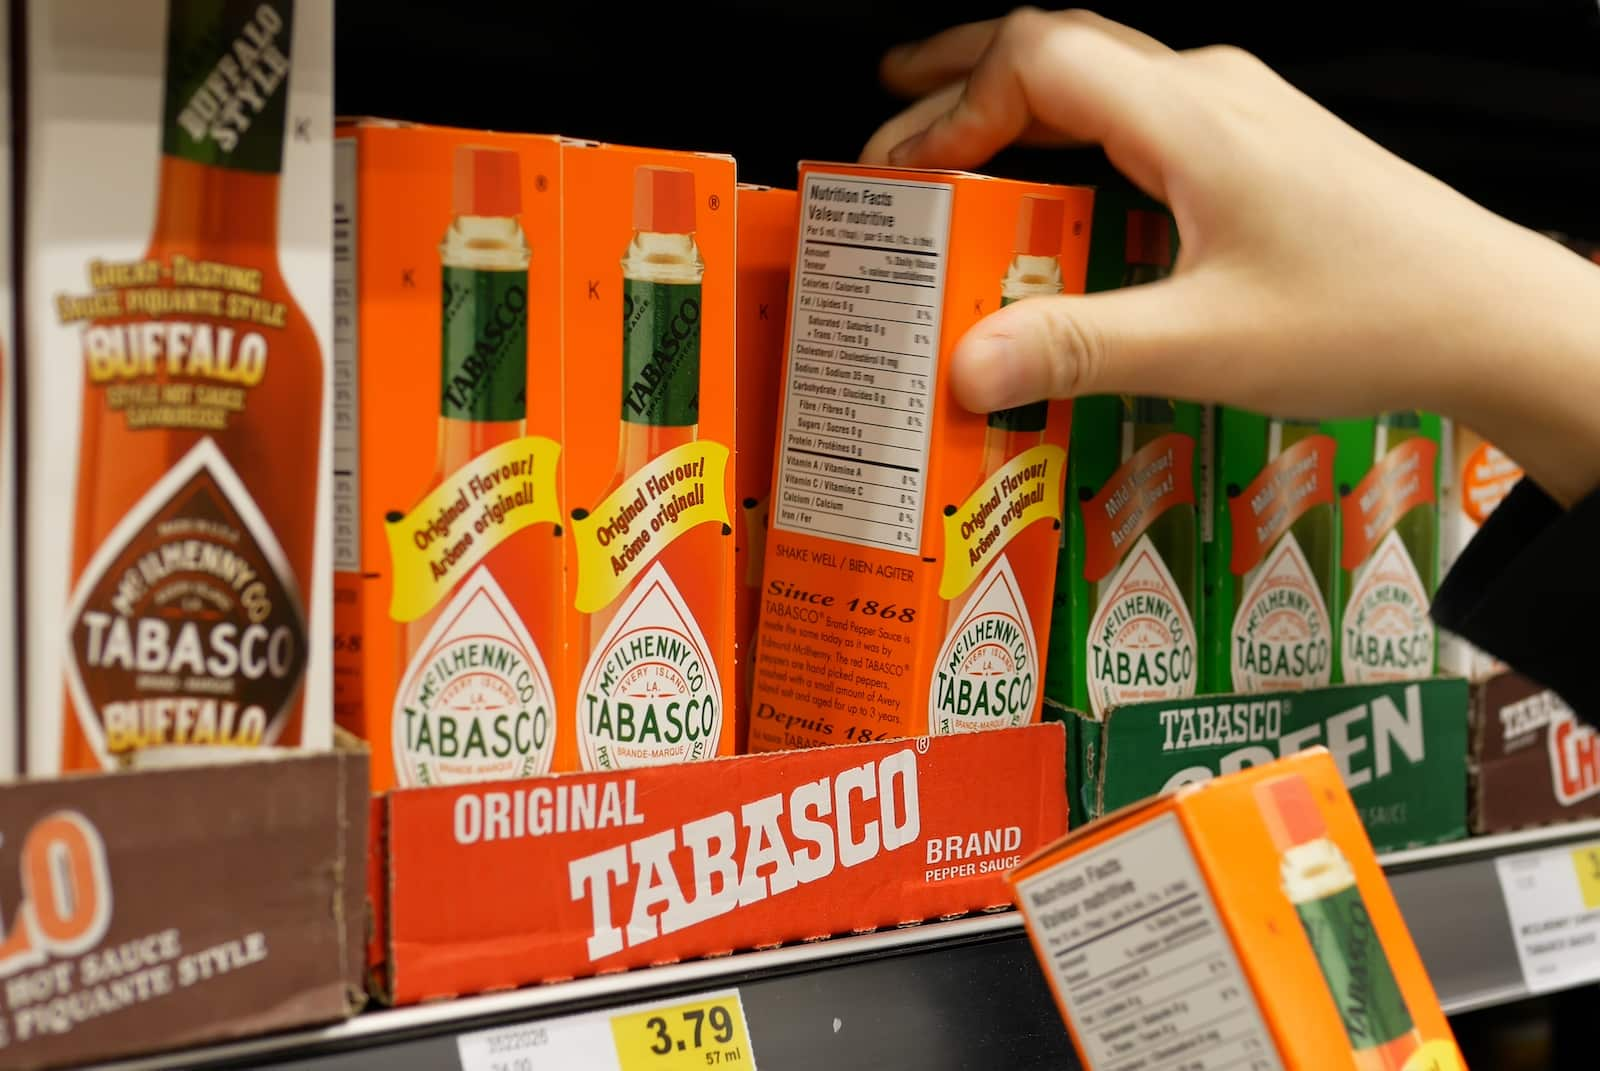 How Hot Is Tabasco?